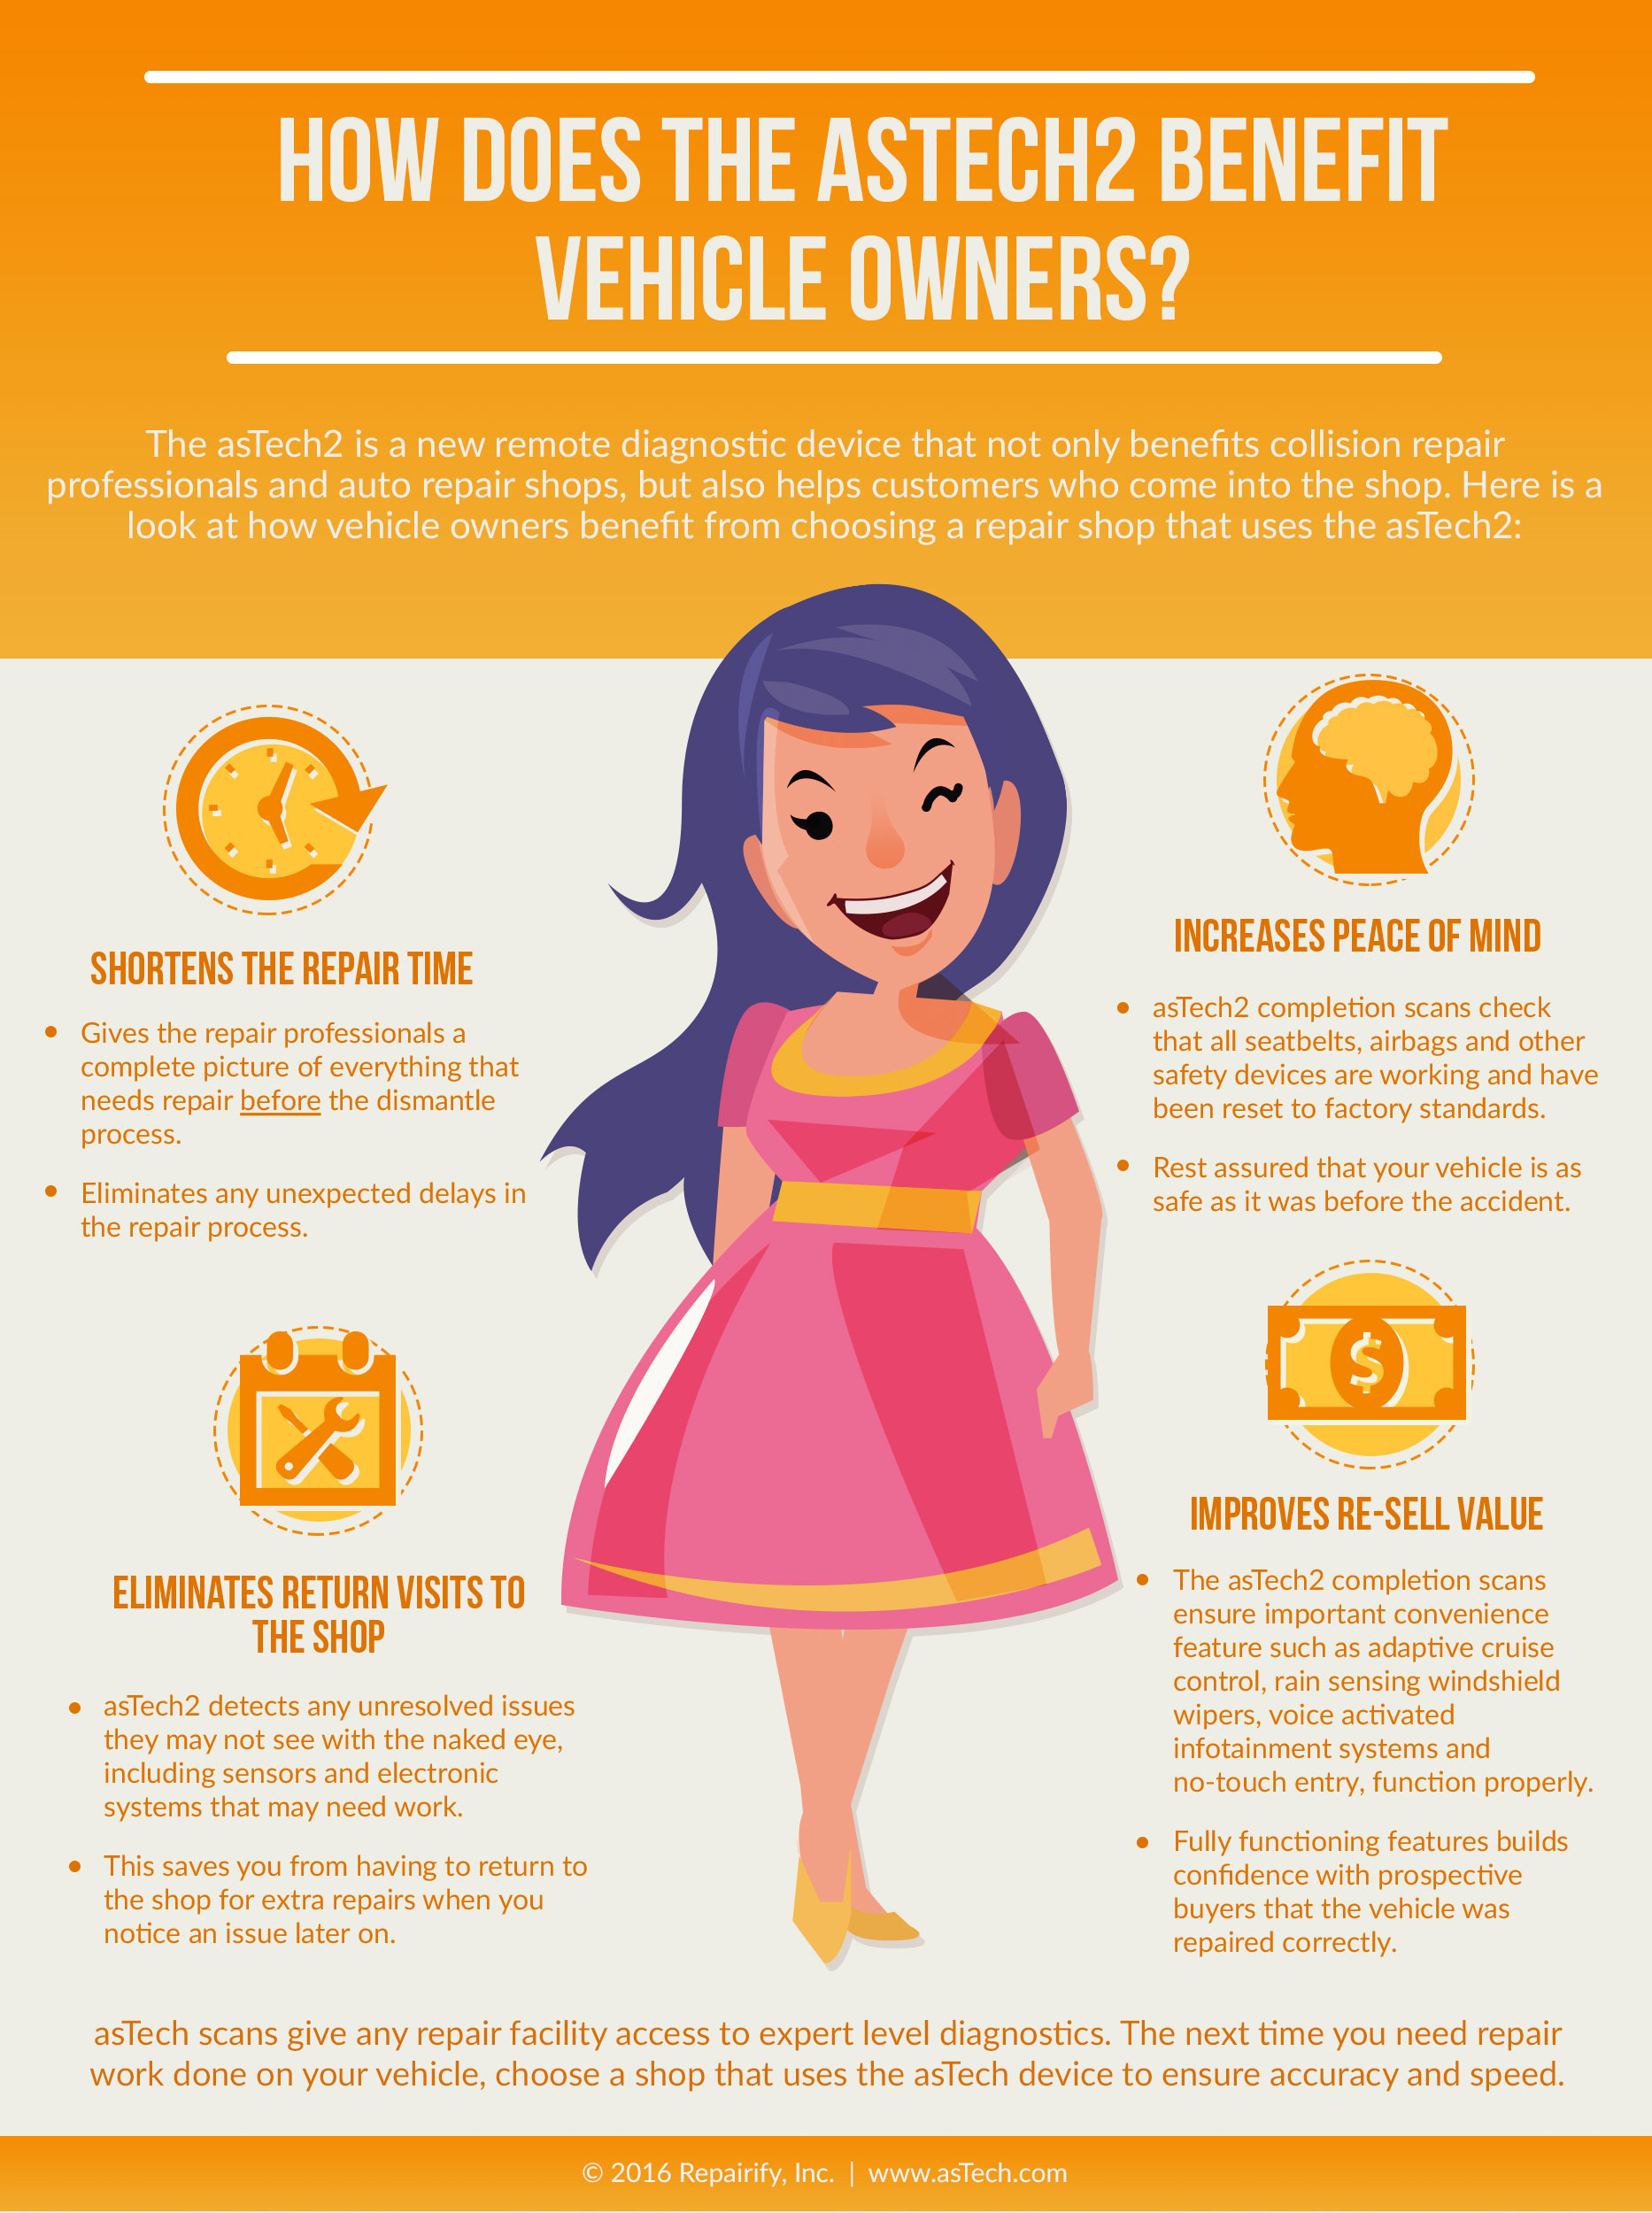 How Does the asTech2 Benefit Vehicle Owners?